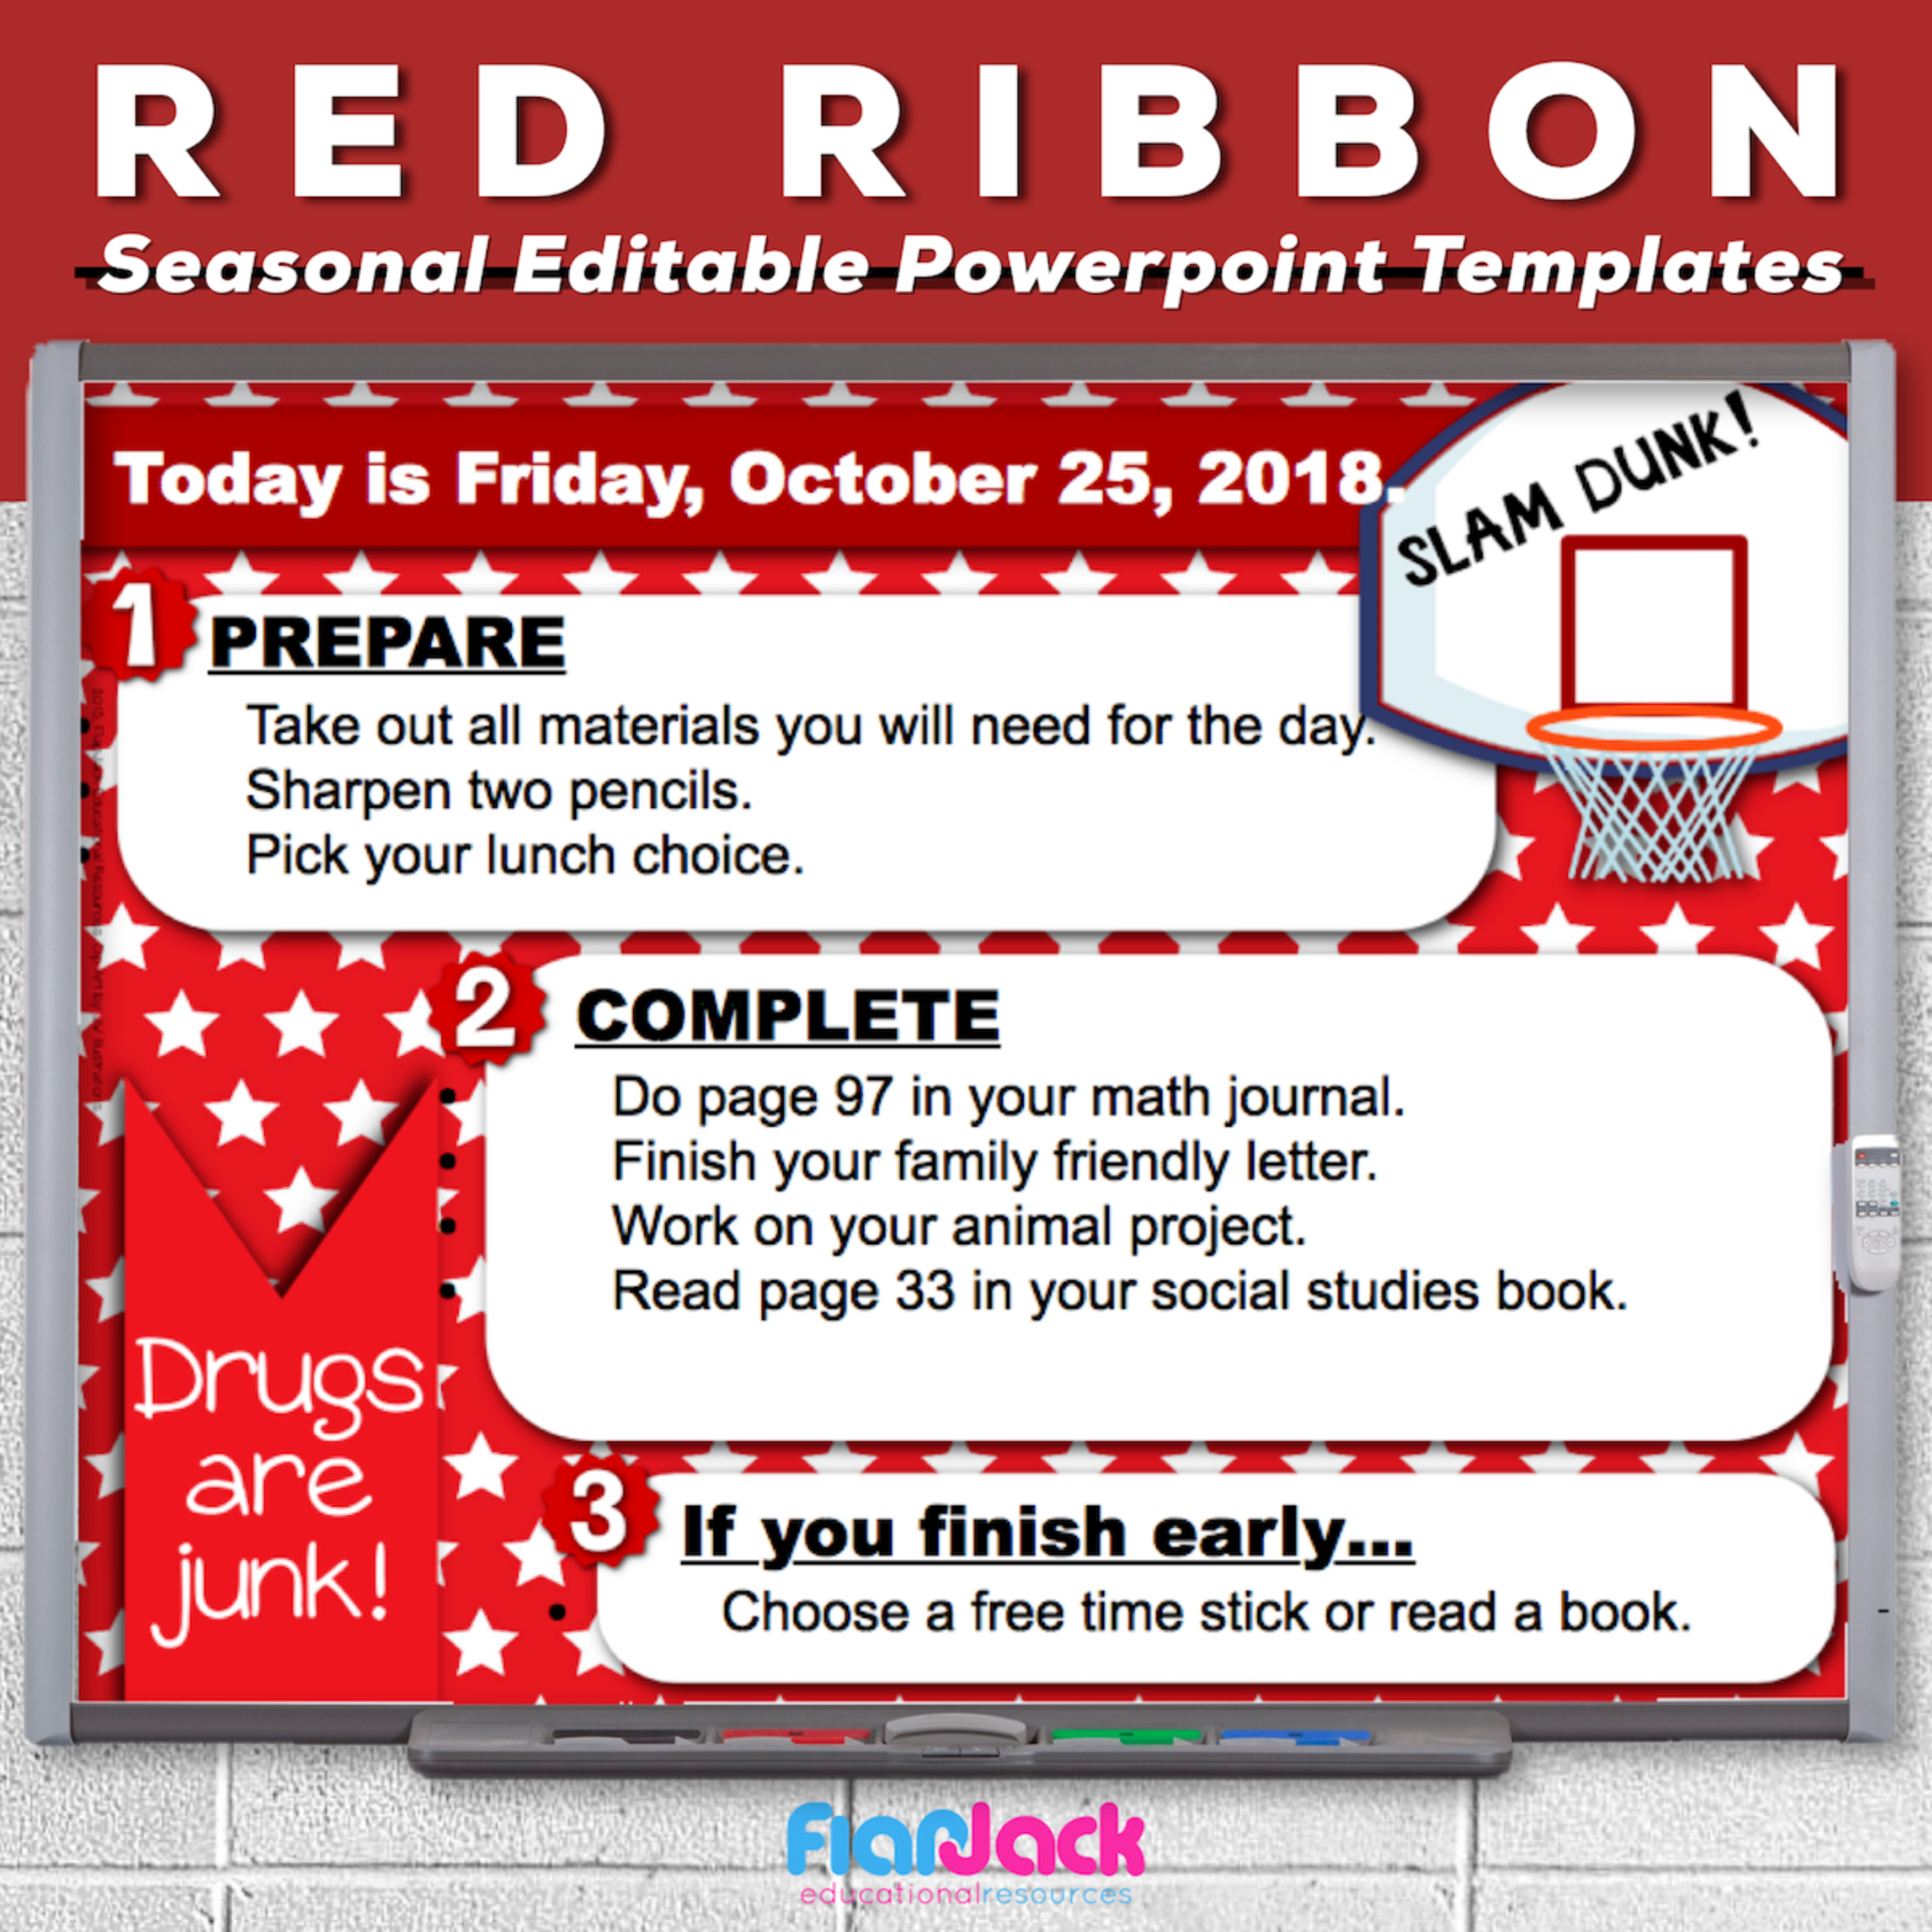 Red Ribbon Editable PowerPoint Templates